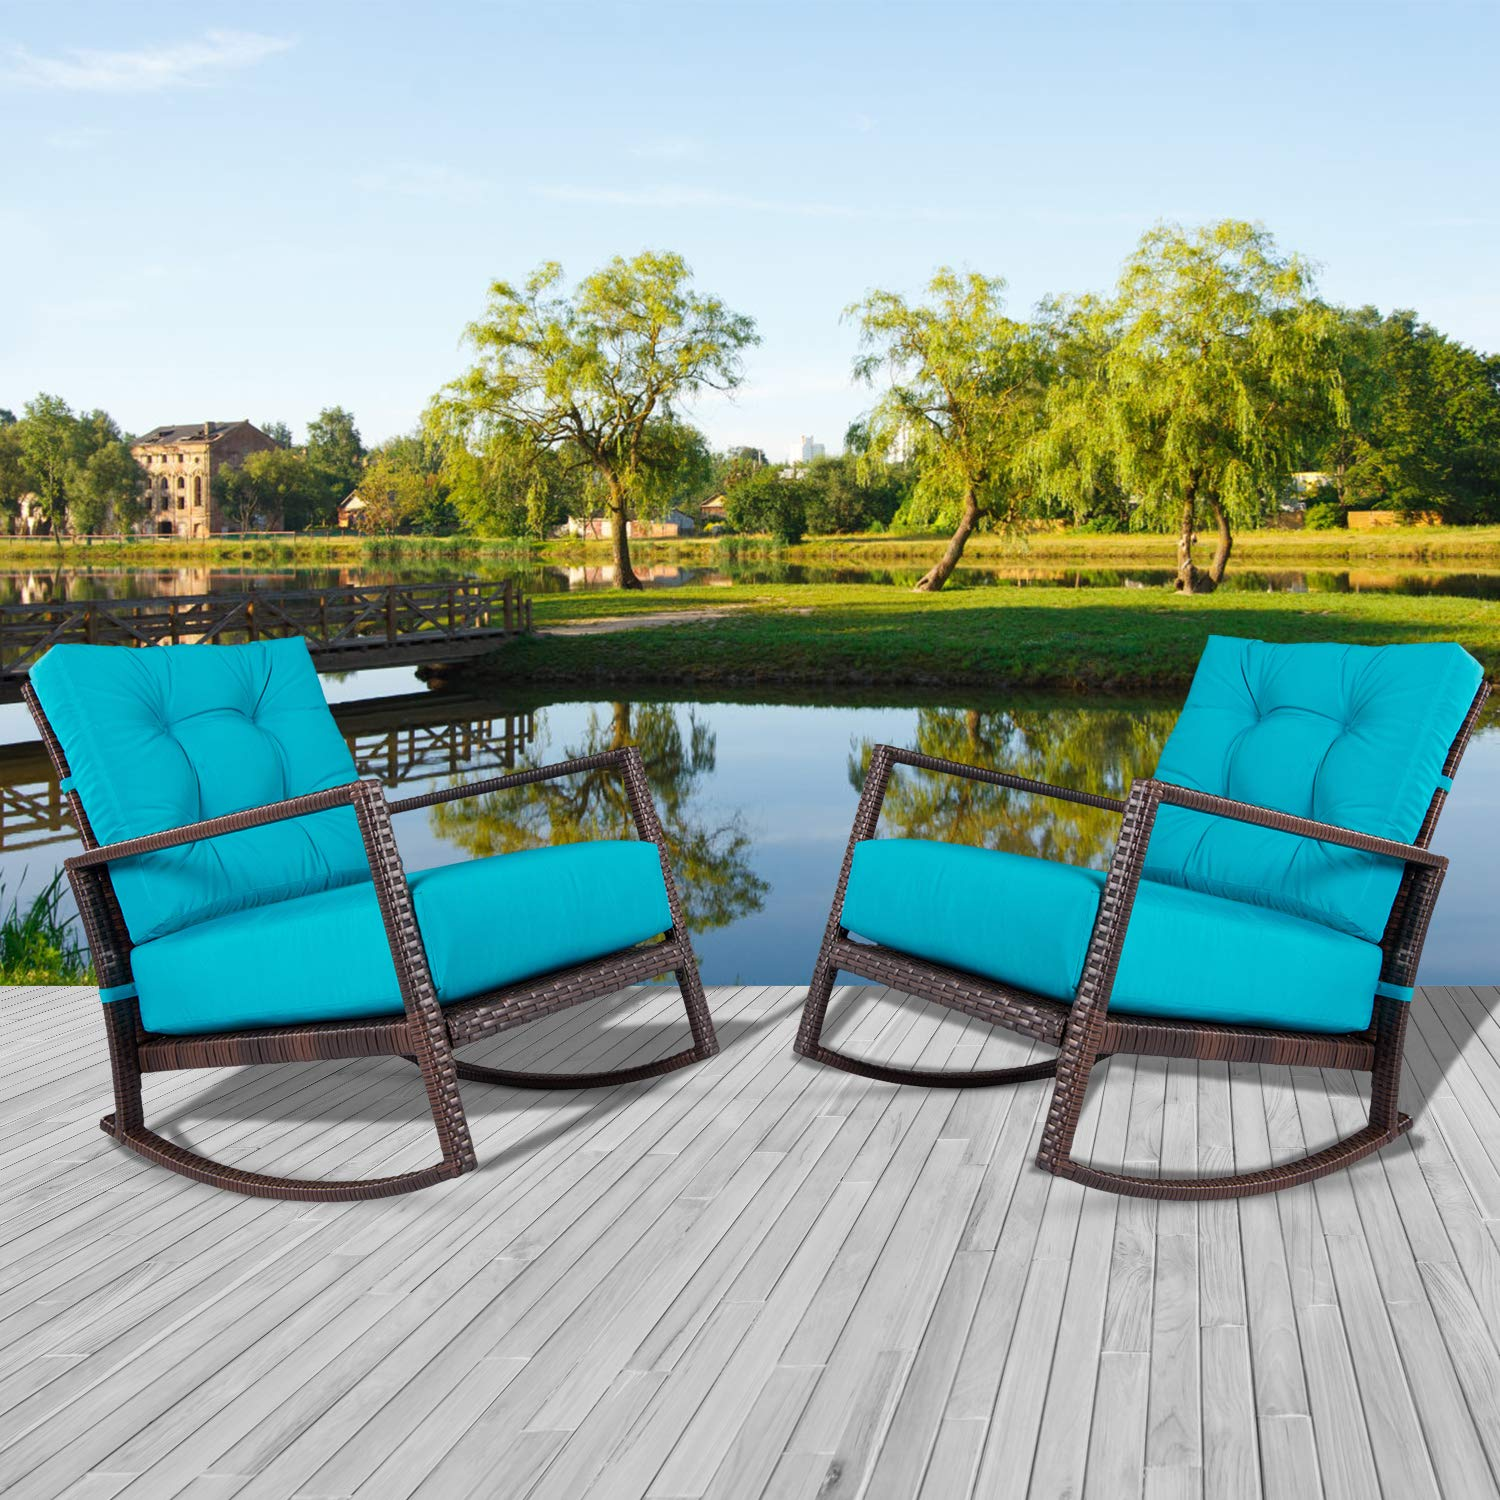 Incbruce Outdoor Patio Rocking Chair 2 Piece Wicker Rocking Bistro Set w/Washable and Thick Cushion, Garden Conversation Sets with Teal Seat Cushion